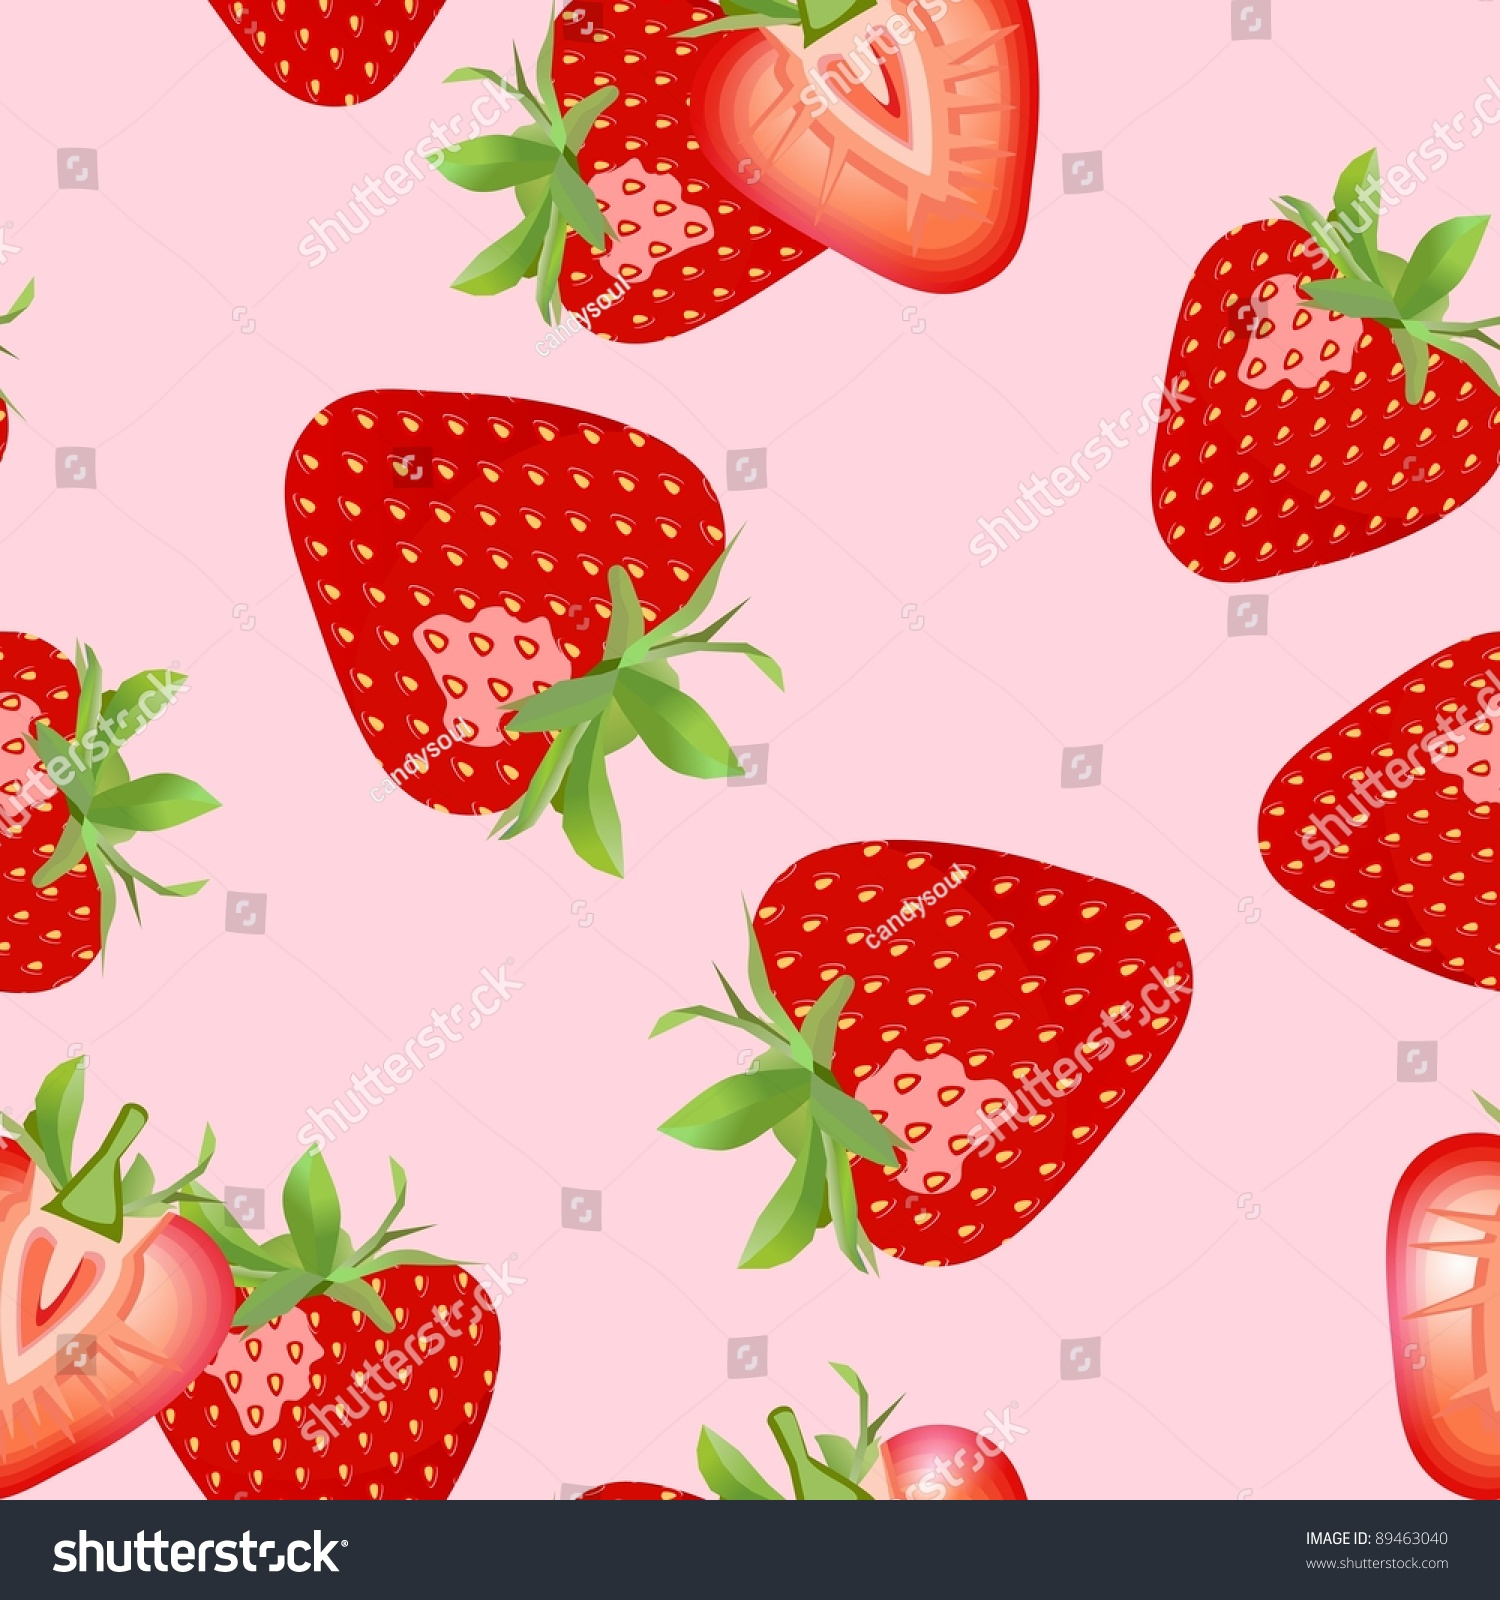 Macro Sliced Strawberries Isolated Over Pink Background Seamless Wallpaper Strawberry